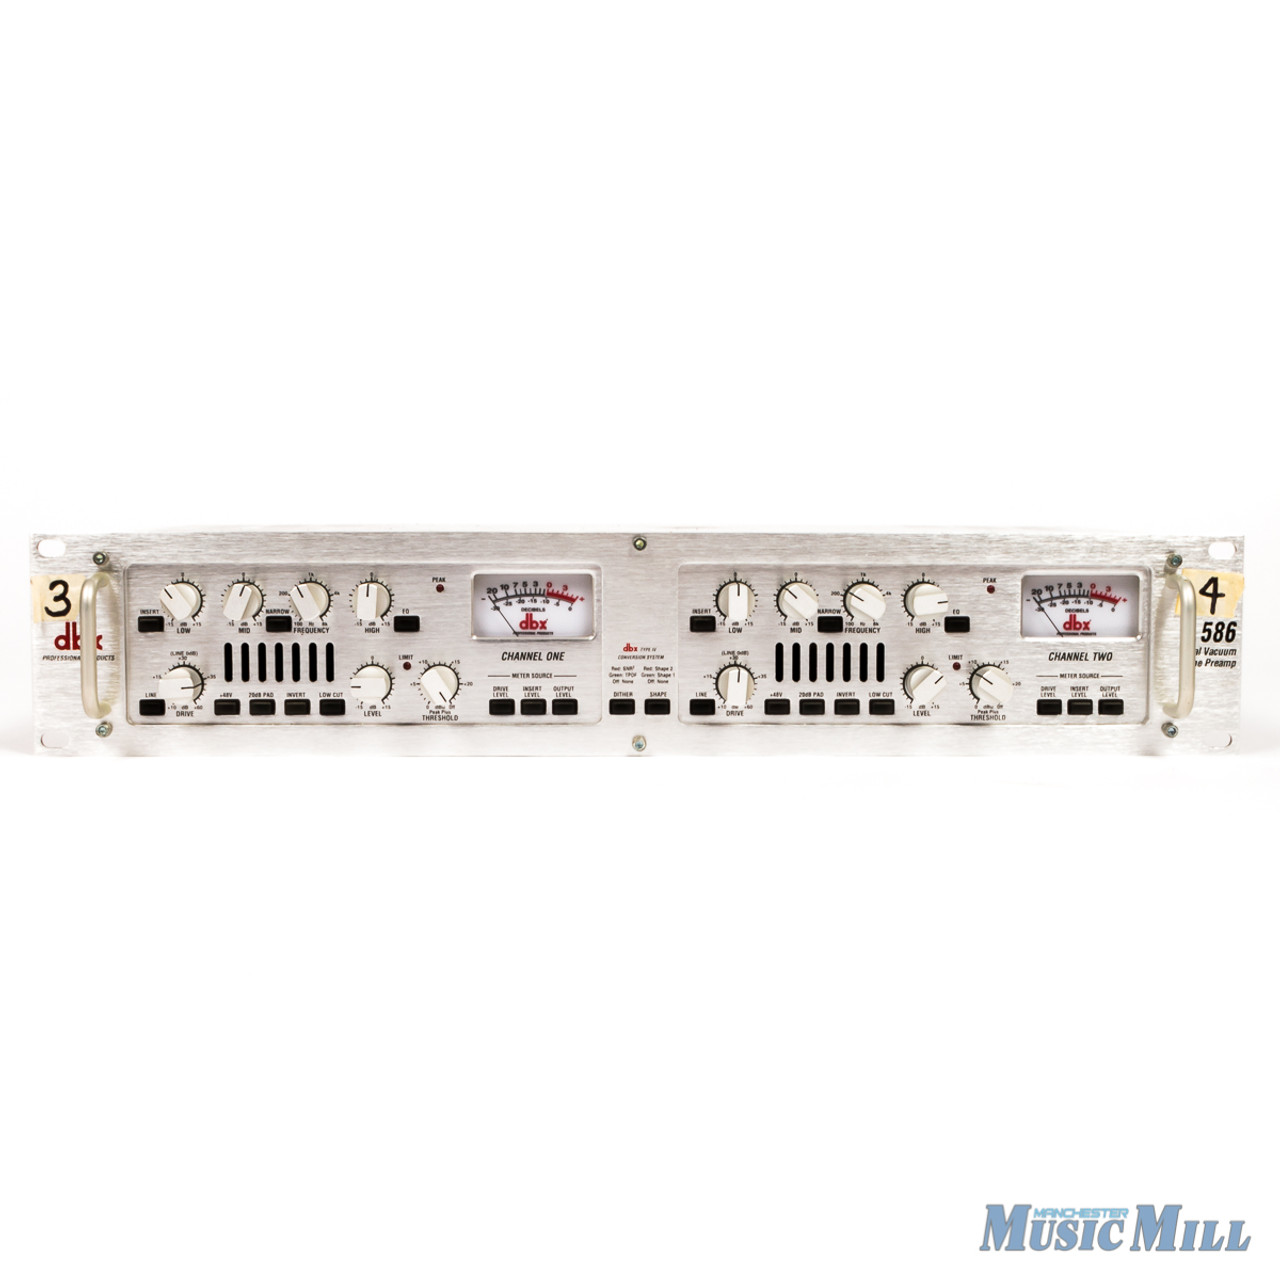 DBX 586 2-Channel Tube Mic Preamp (USED)